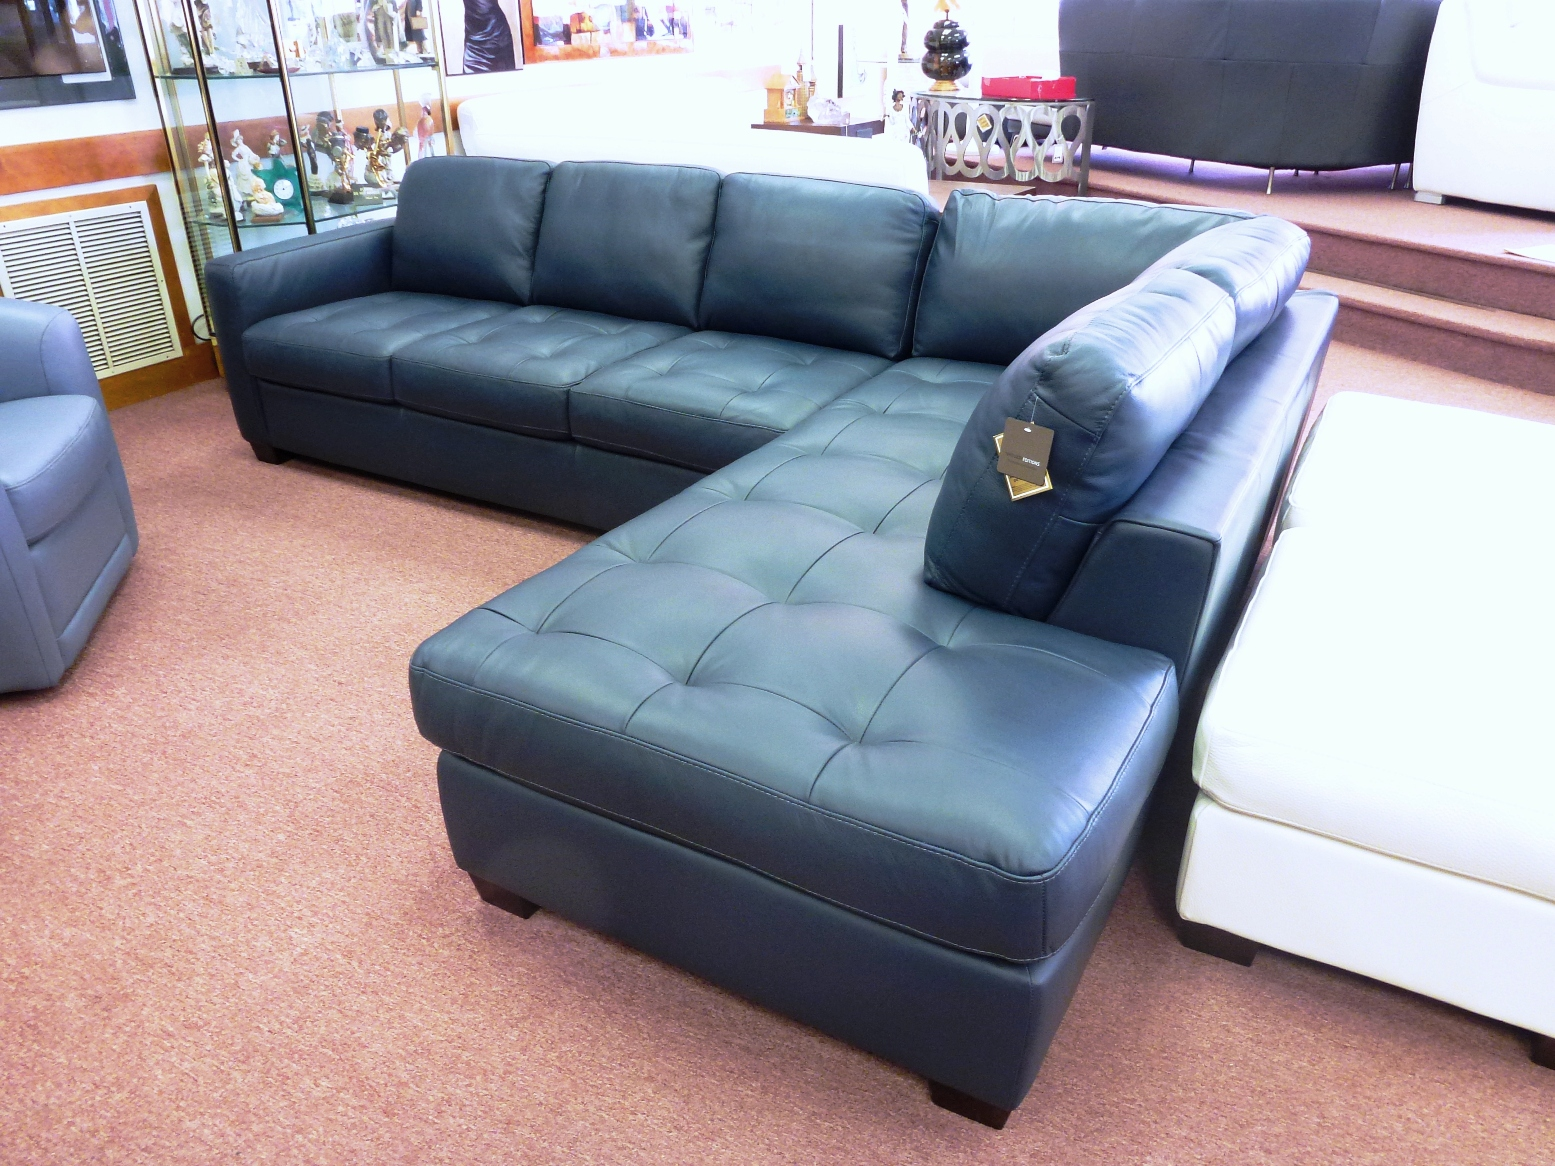 Navy Blue Sectional Sofa Design Options HomesFeed : Blue navy leather sectional in L shaped  from homesfeed.com size 1555 x 1166 jpeg 974kB